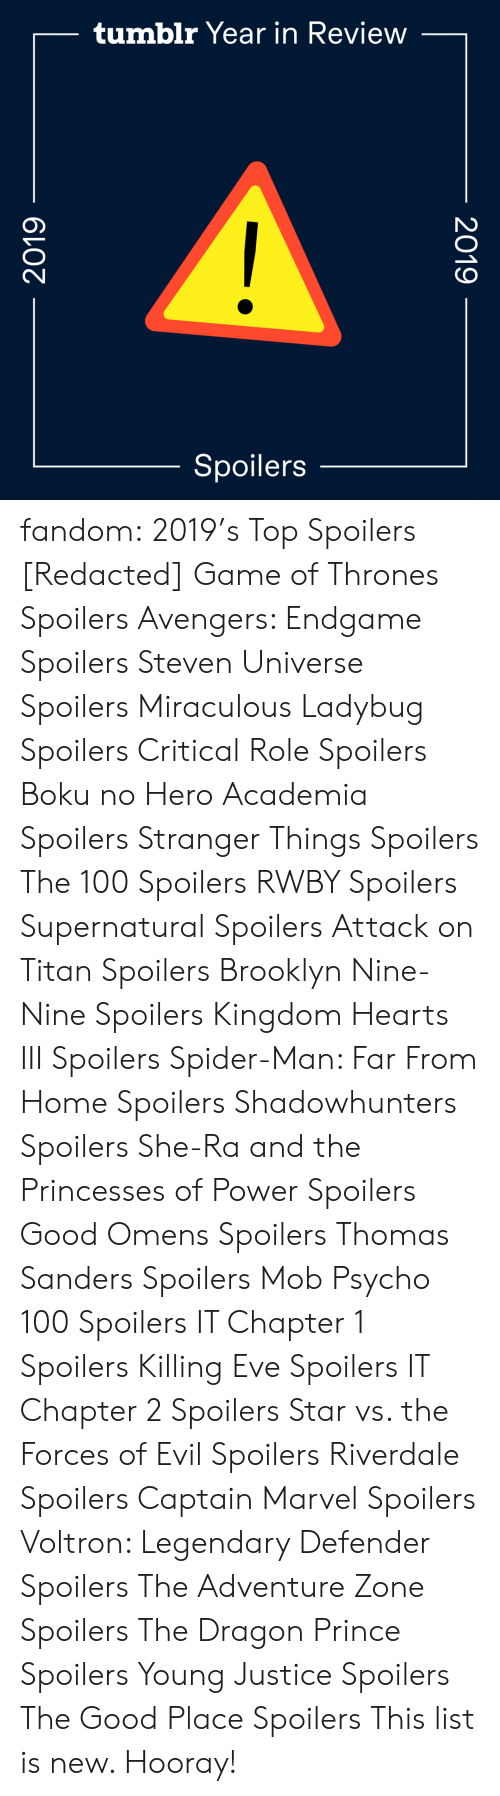 kingdom: tumblr Year in Review  Spoilers  2019  2019 fandom:  2019's Top Spoilers  [Redacted]  Game of Thrones Spoilers  Avengers: Endgame Spoilers  Steven Universe Spoilers  Miraculous Ladybug Spoilers  Critical Role Spoilers  Boku no Hero Academia Spoilers  Stranger Things Spoilers  The 100 Spoilers  RWBY Spoilers  Supernatural Spoilers  Attack on Titan Spoilers  Brooklyn Nine-Nine Spoilers  Kingdom Hearts III Spoilers  Spider-Man: Far From Home Spoilers  Shadowhunters Spoilers  She-Ra and the Princesses of Power Spoilers  Good Omens Spoilers  Thomas Sanders Spoilers  Mob Psycho 100 Spoilers  IT Chapter 1 Spoilers  Killing Eve Spoilers  IT Chapter 2 Spoilers  Star vs. the Forces of Evil Spoilers  Riverdale Spoilers  Captain Marvel Spoilers  Voltron: Legendary Defender Spoilers  The Adventure Zone Spoilers  The Dragon Prince Spoilers  Young Justice Spoilers  The Good Place Spoilers This list is new. Hooray!